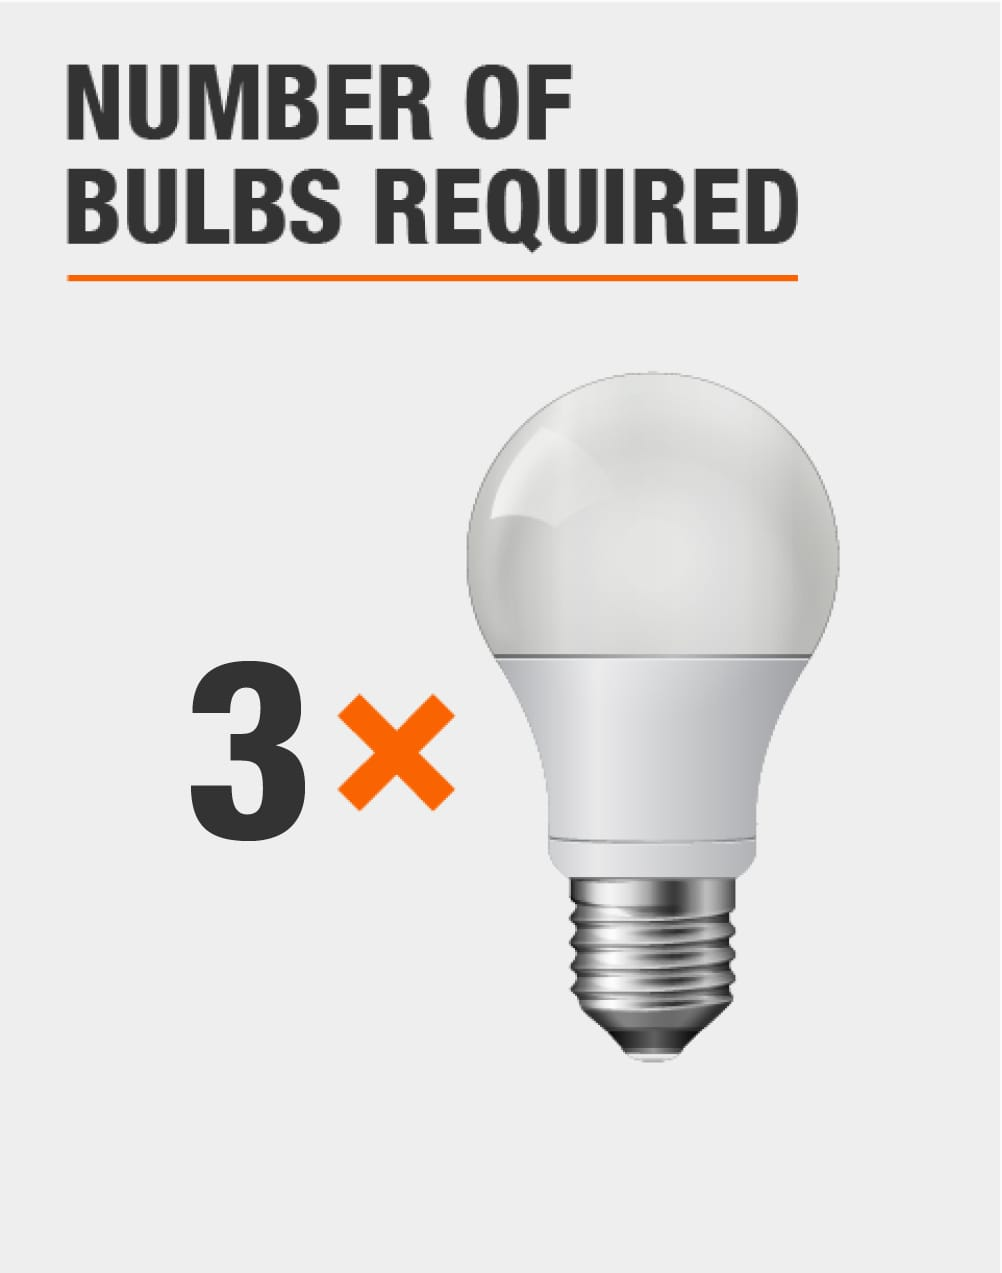 number of bulbs required is 3